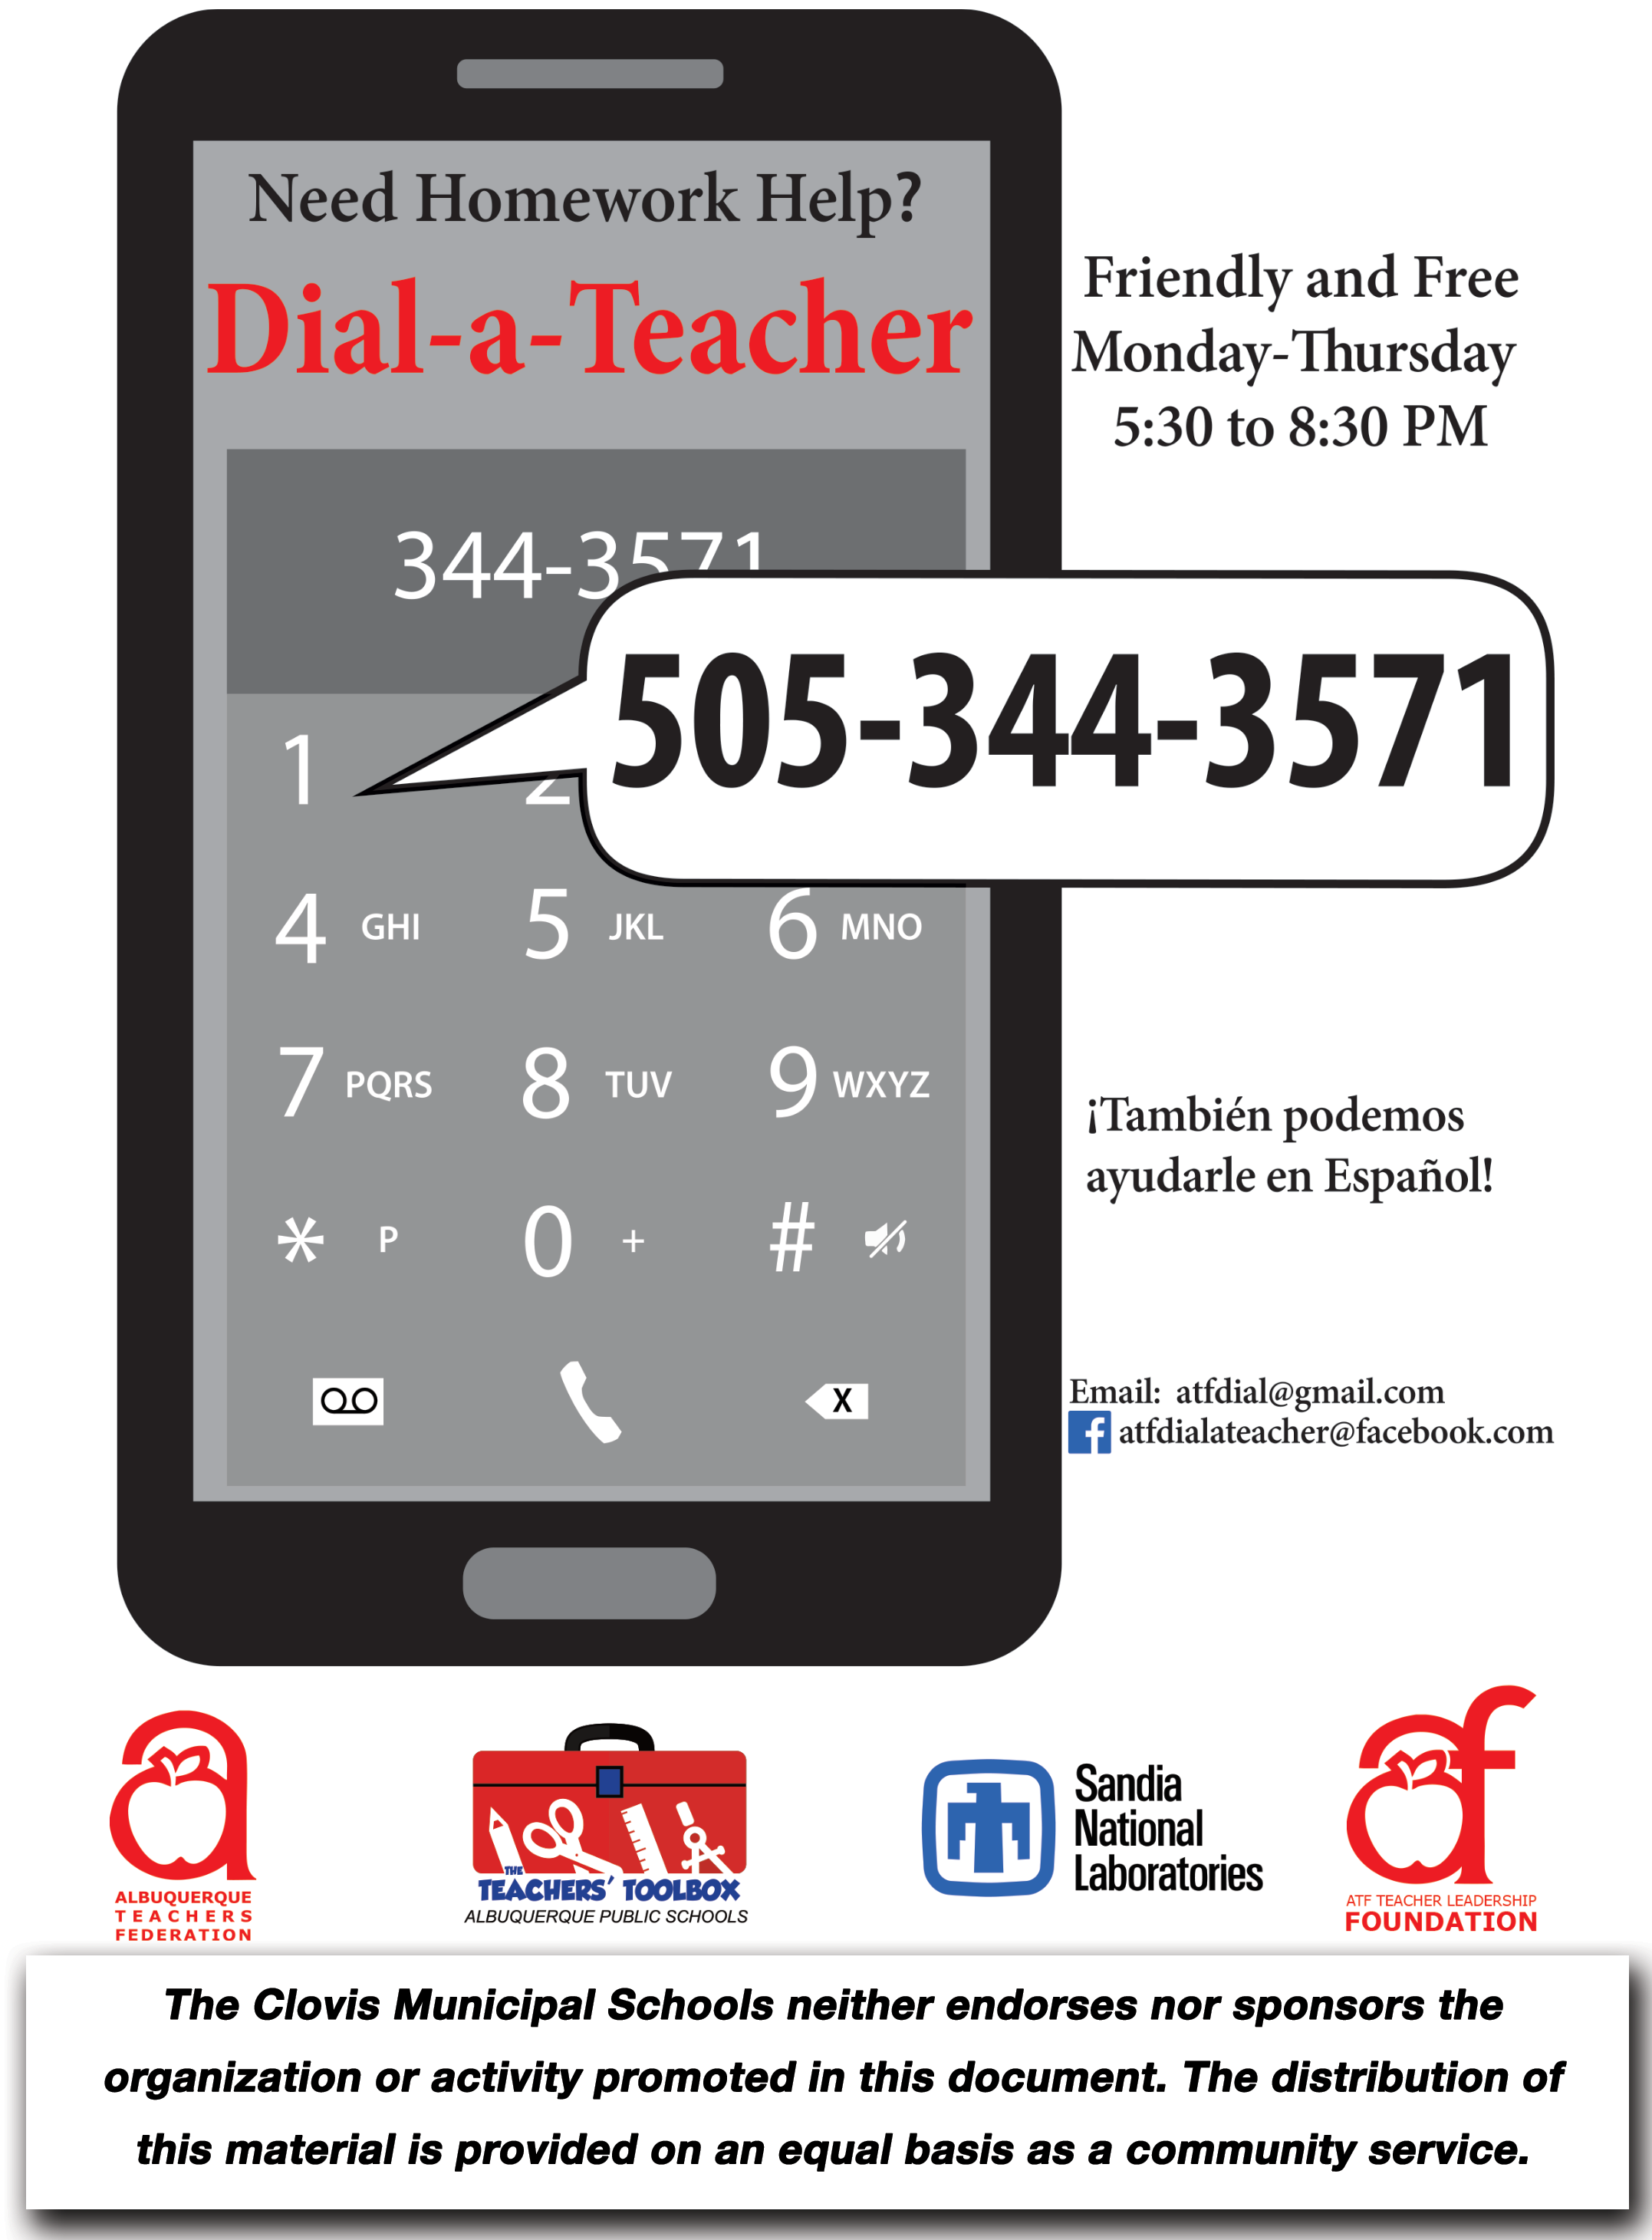 Image of text announcing DIAL-A-TEACHER PROGRAM